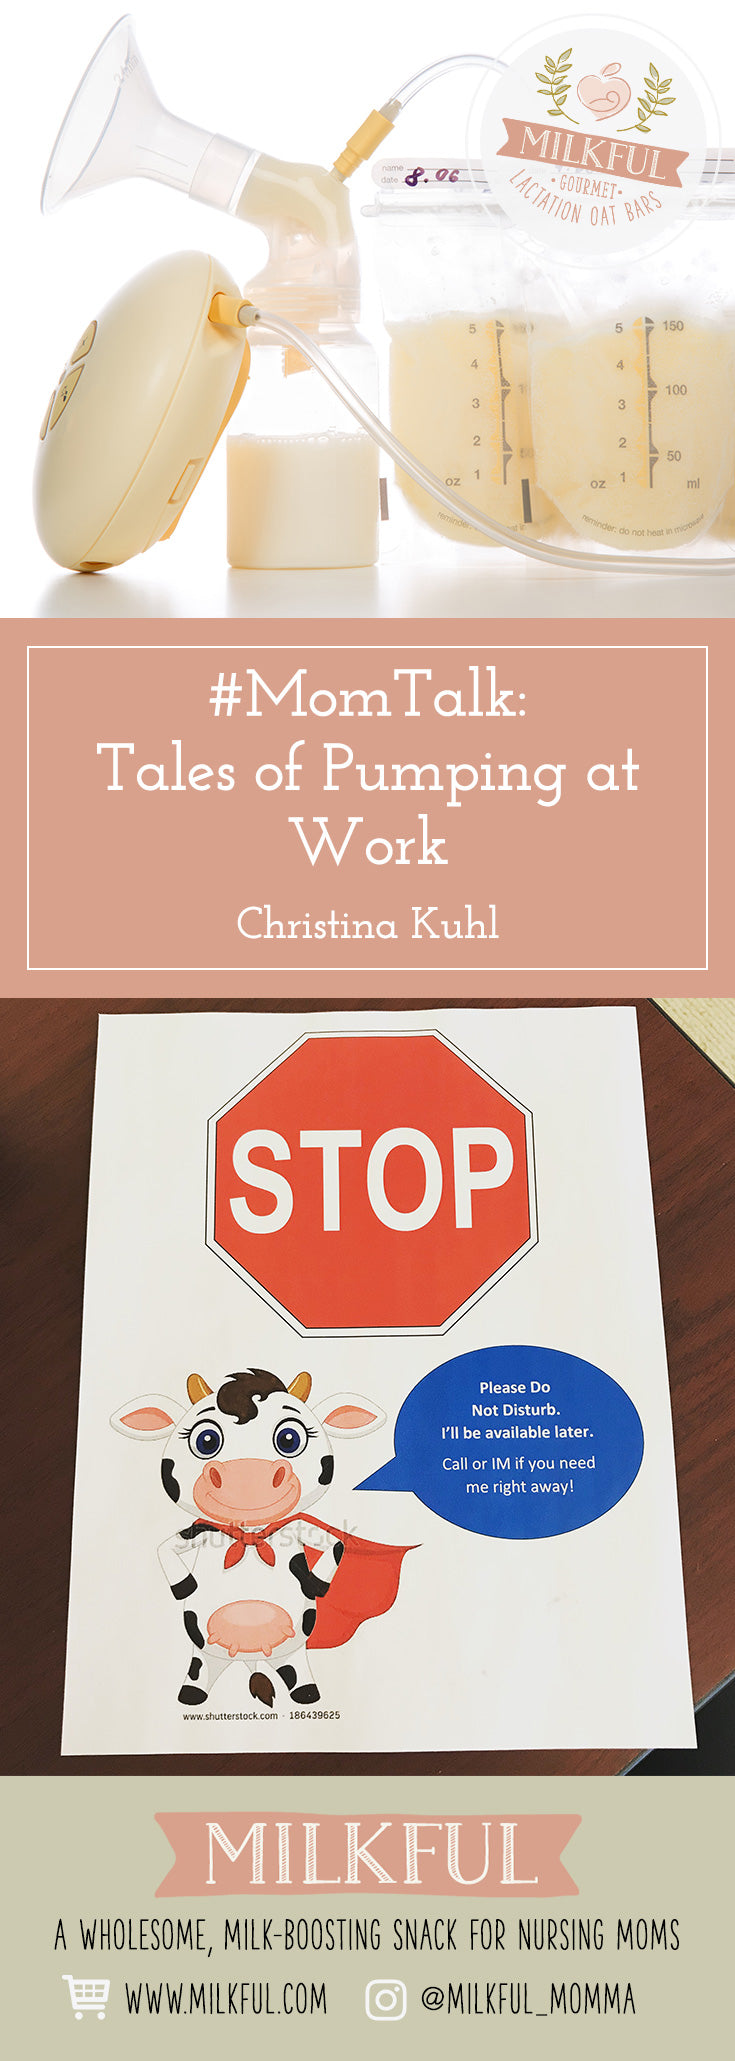 #MomTalk:  Tales of Pumping at Work by Christina Kuhl